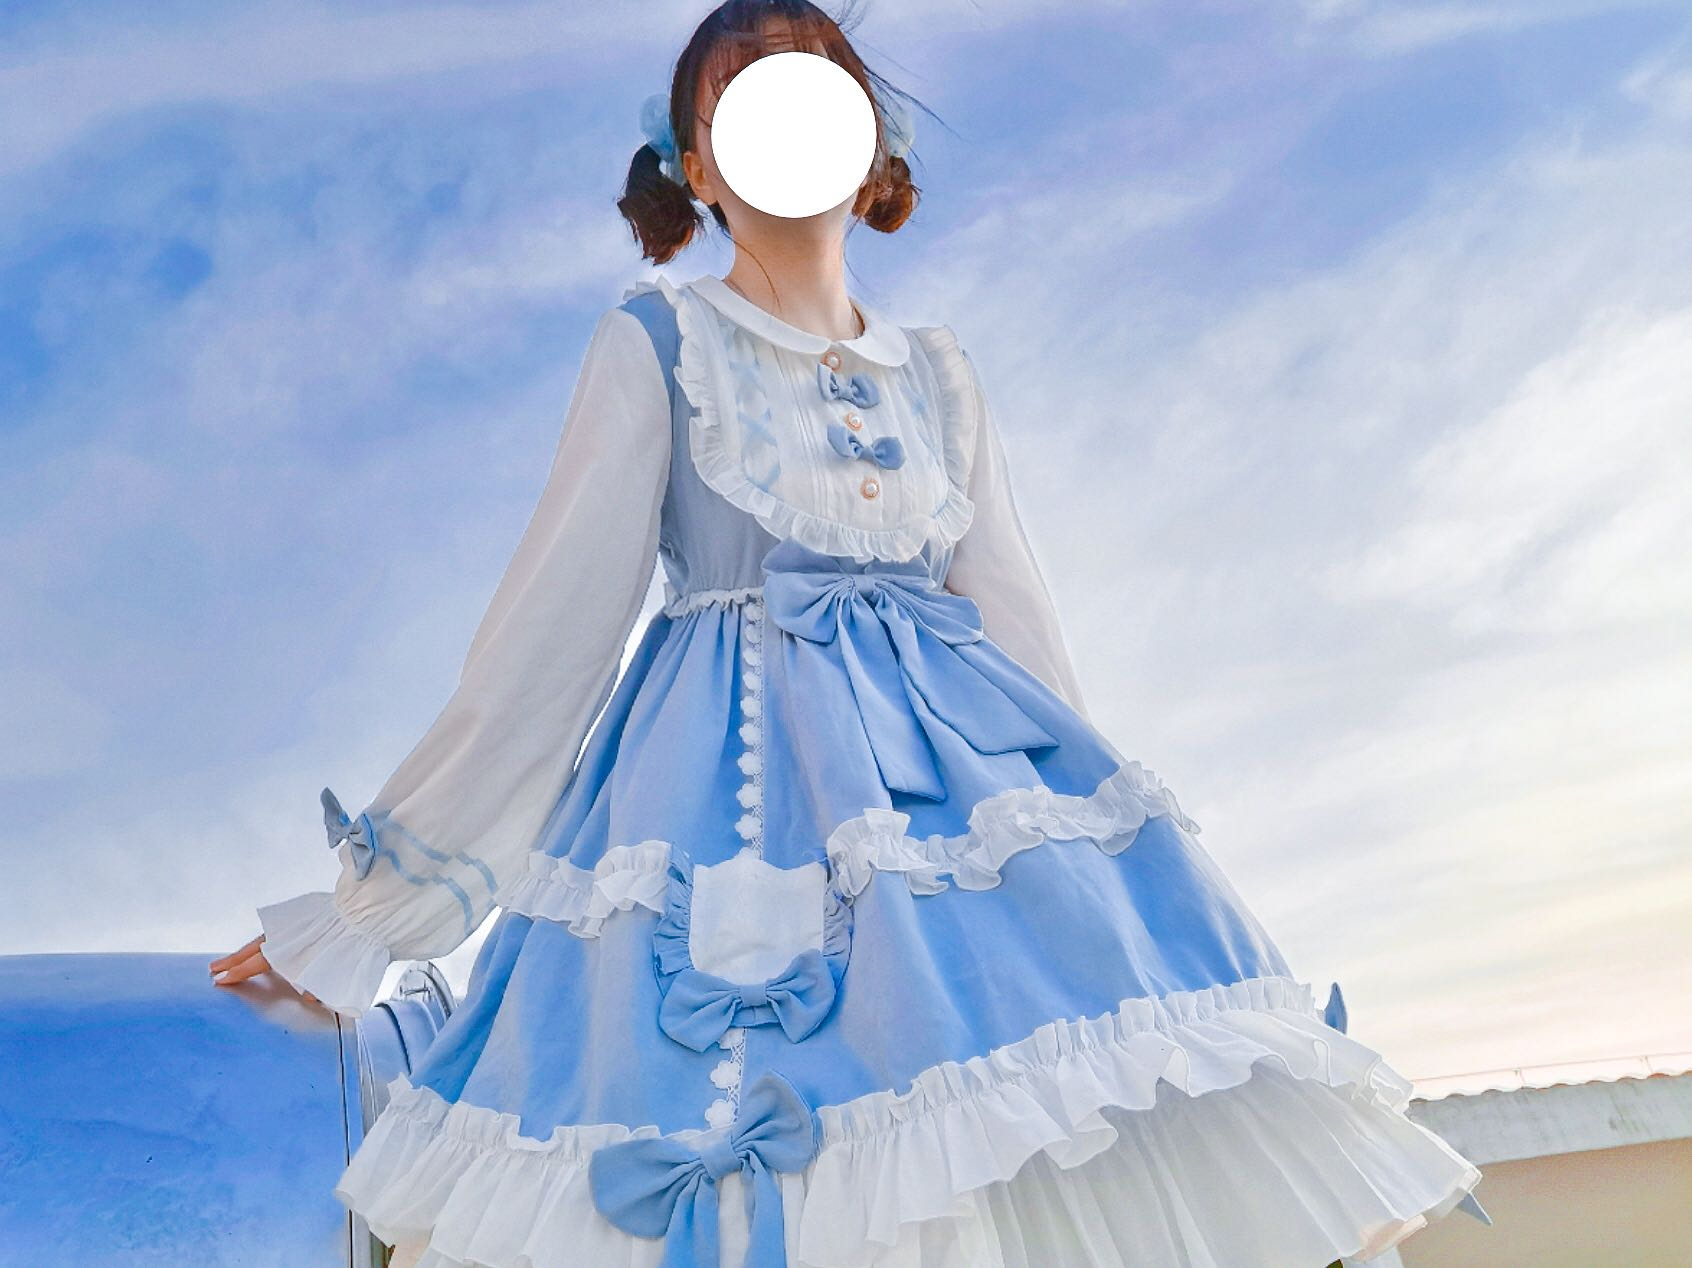 [cherry pomelo girl] with a deposit, without a deposit, Lolita